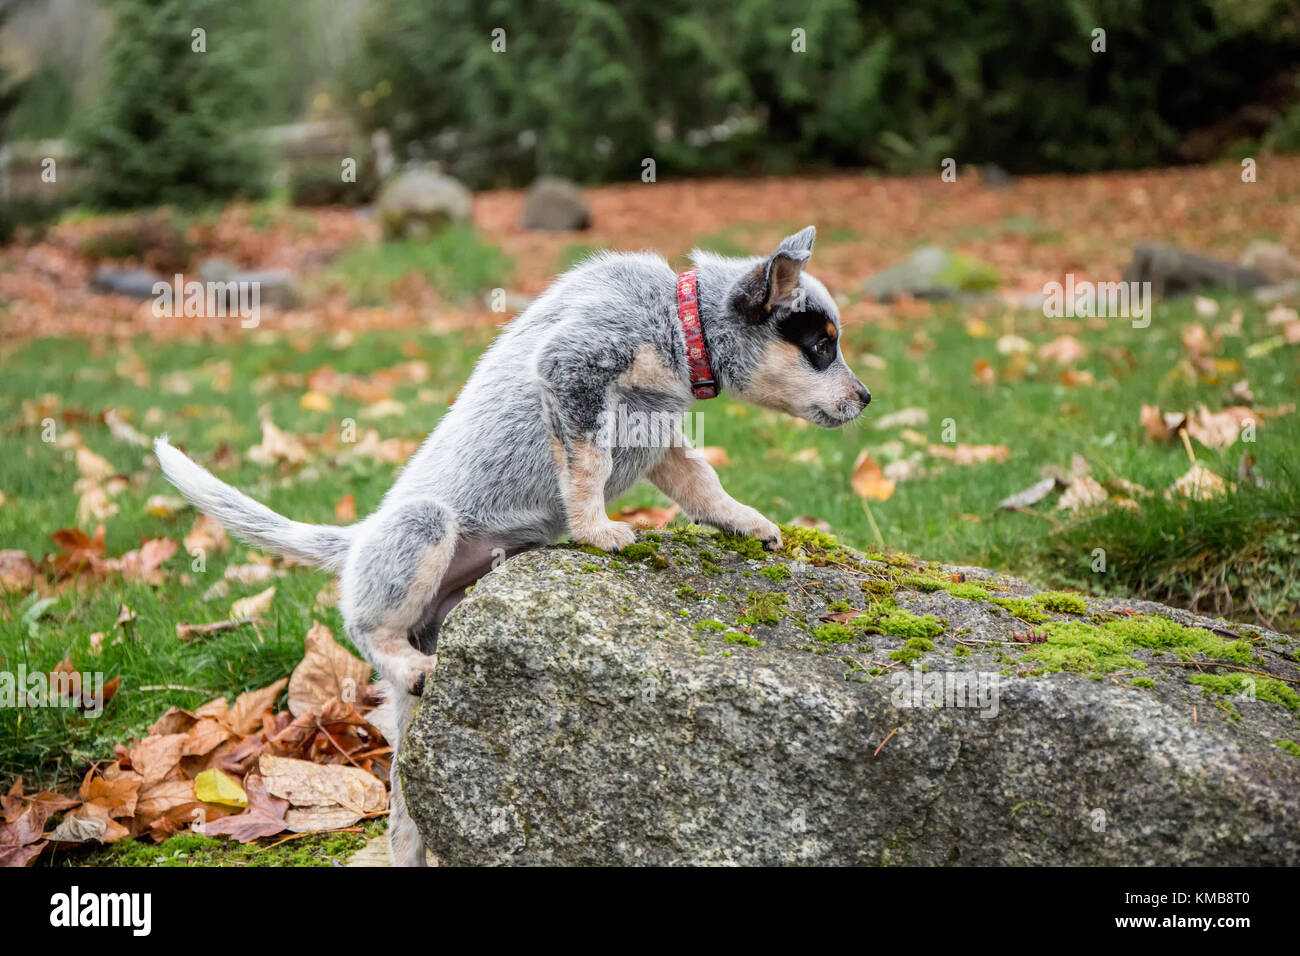 'Lilly', a 10 week old Australian Cattledog puppy struggling to climb on top of a rock in Issaquah, Washington, - Stock Image